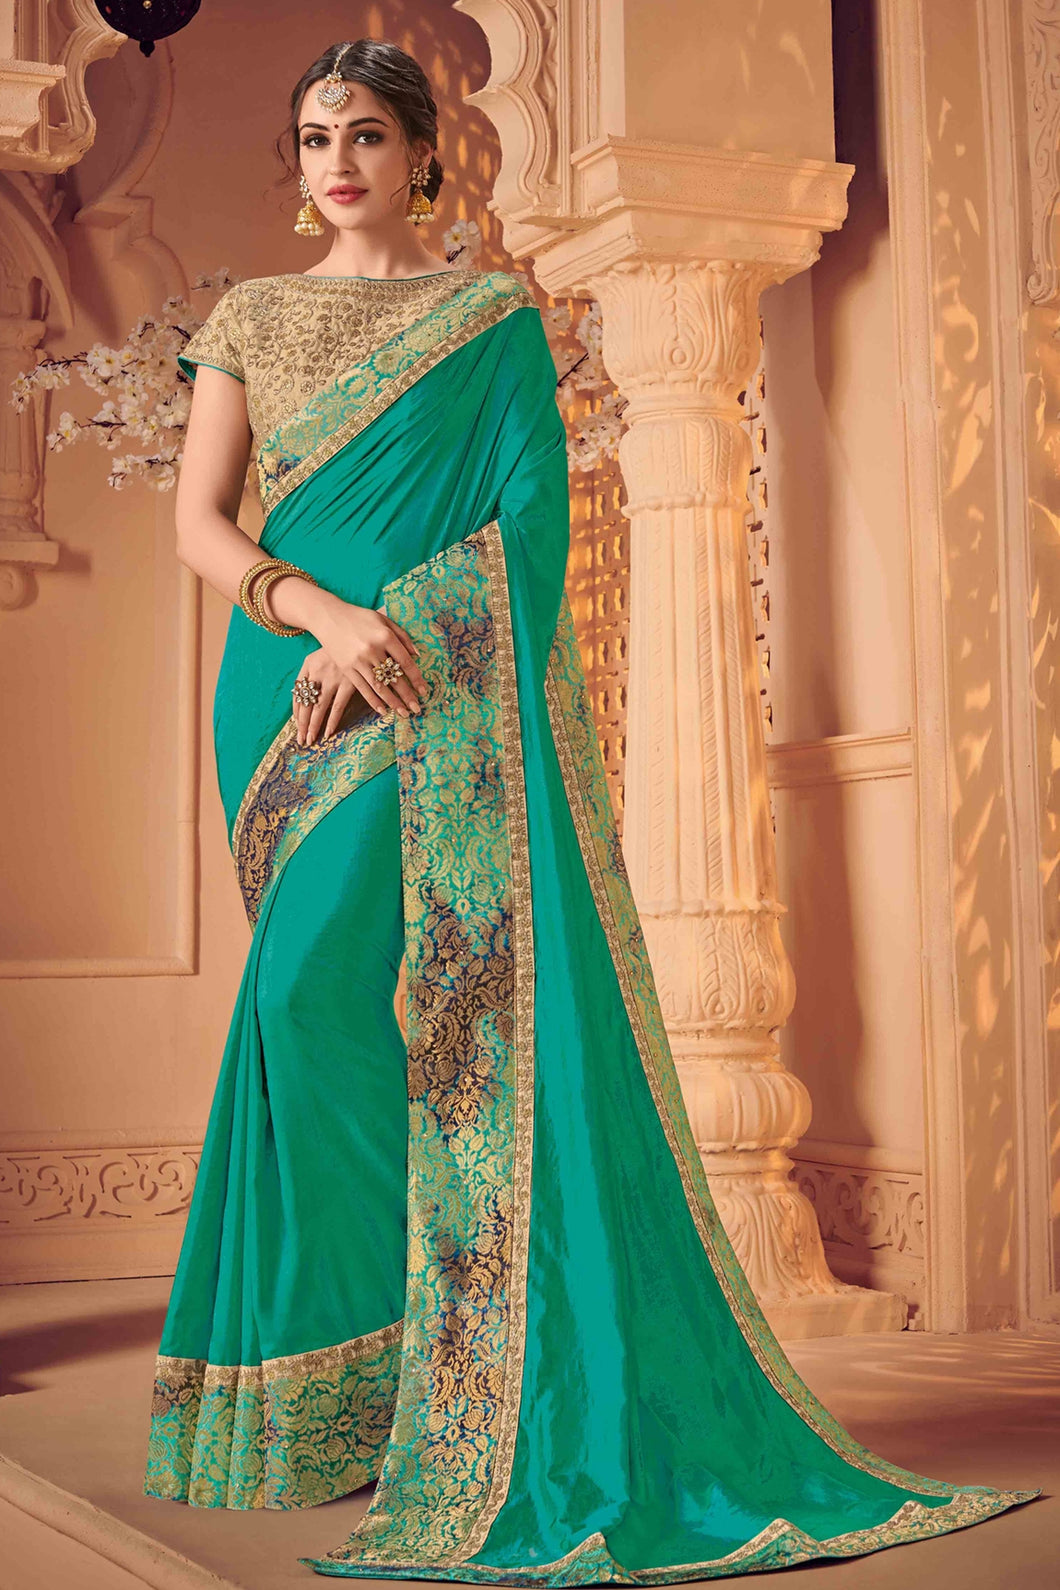 Bhelpuri Green Raw Silk Heavy Designed Saree with Blouse Piece